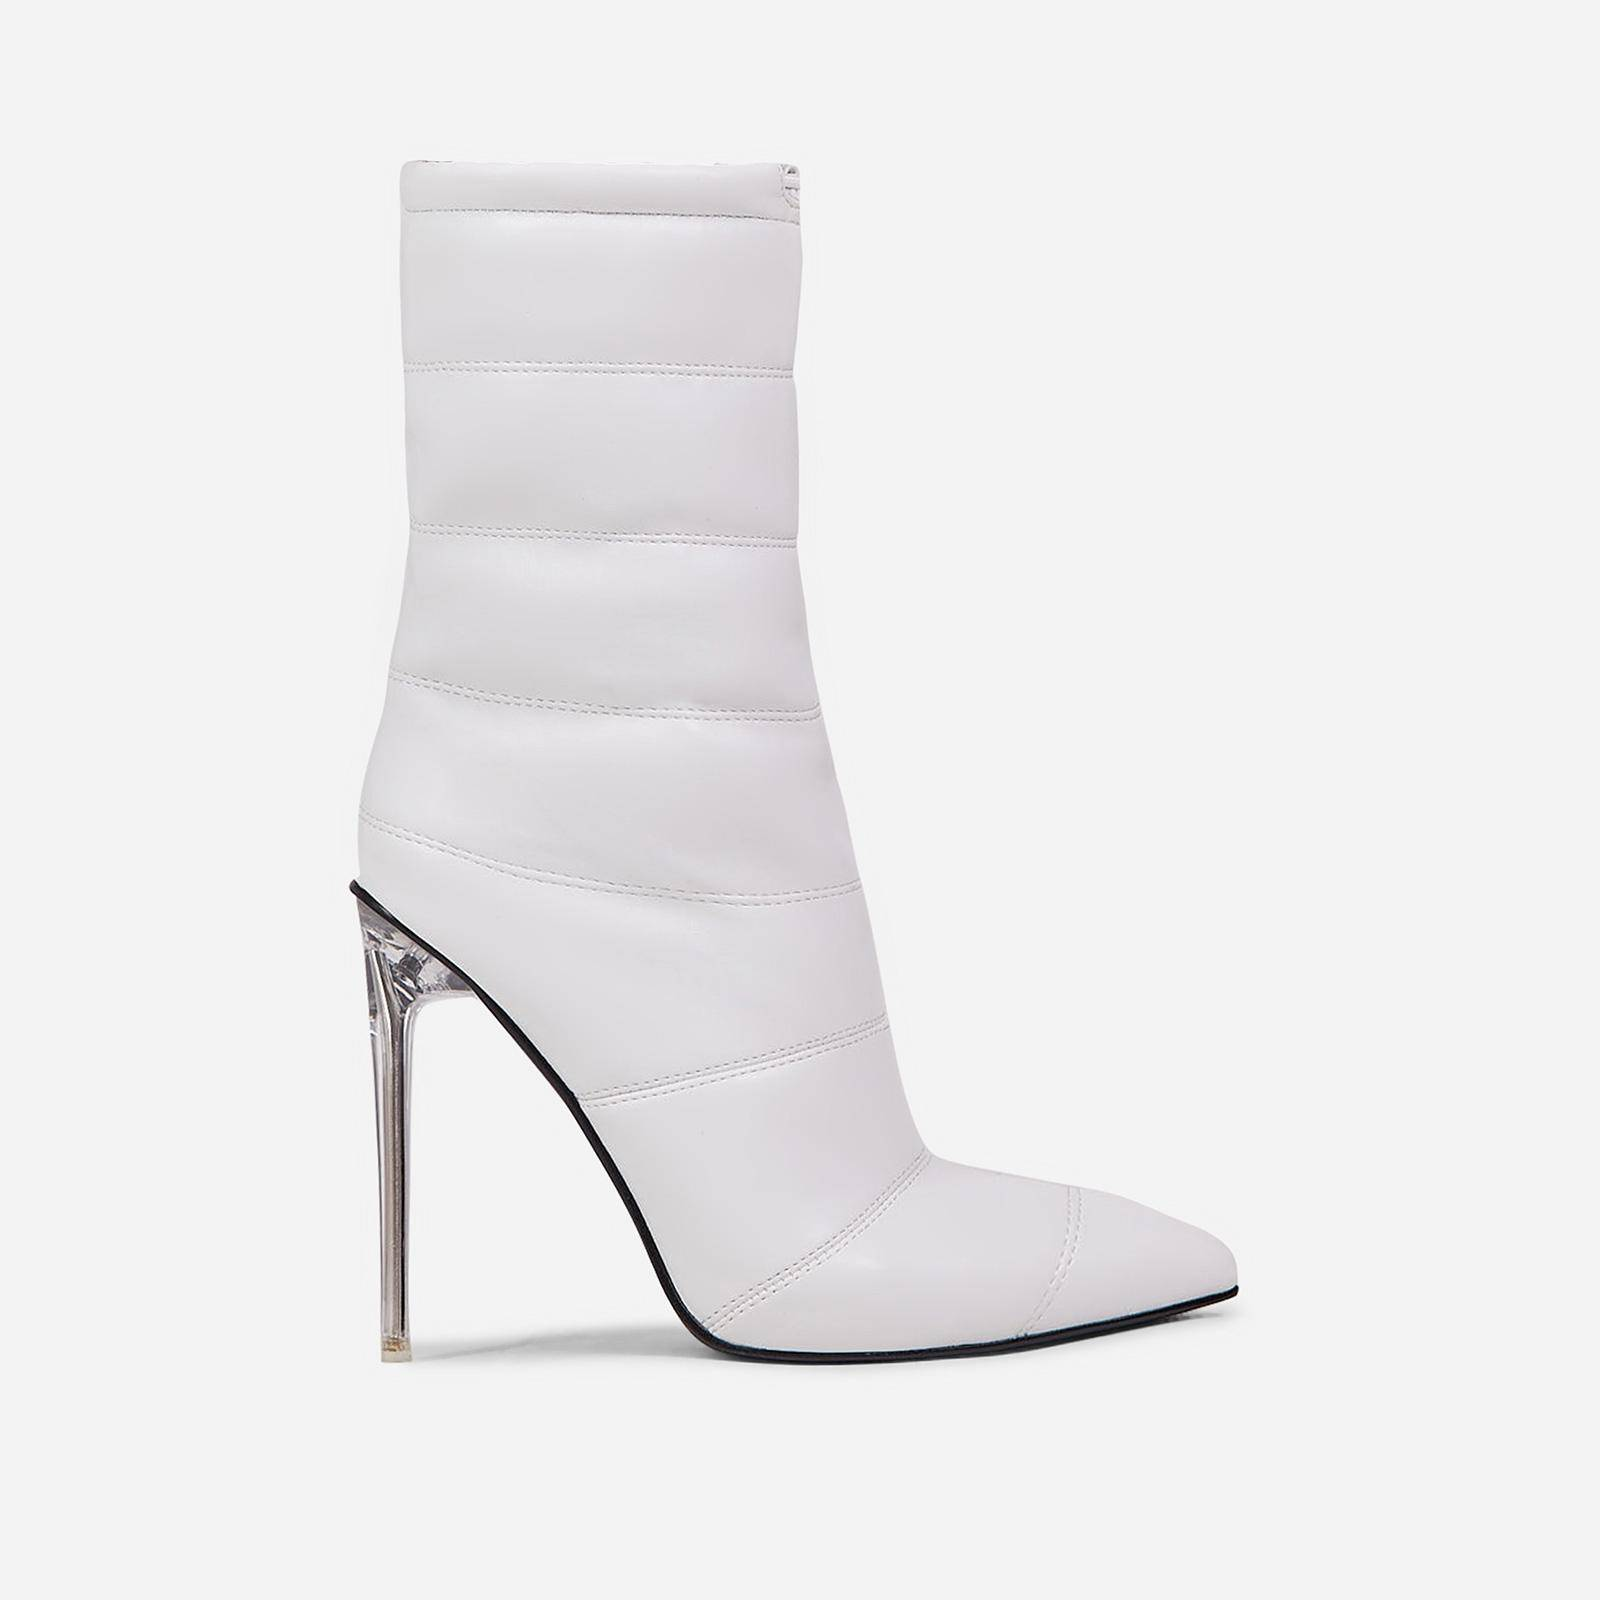 EGO Queen Puffa Pointed Toe Clear Perspex Heel Ankle Boot In White Faux Leather, White  - female - Size: 9